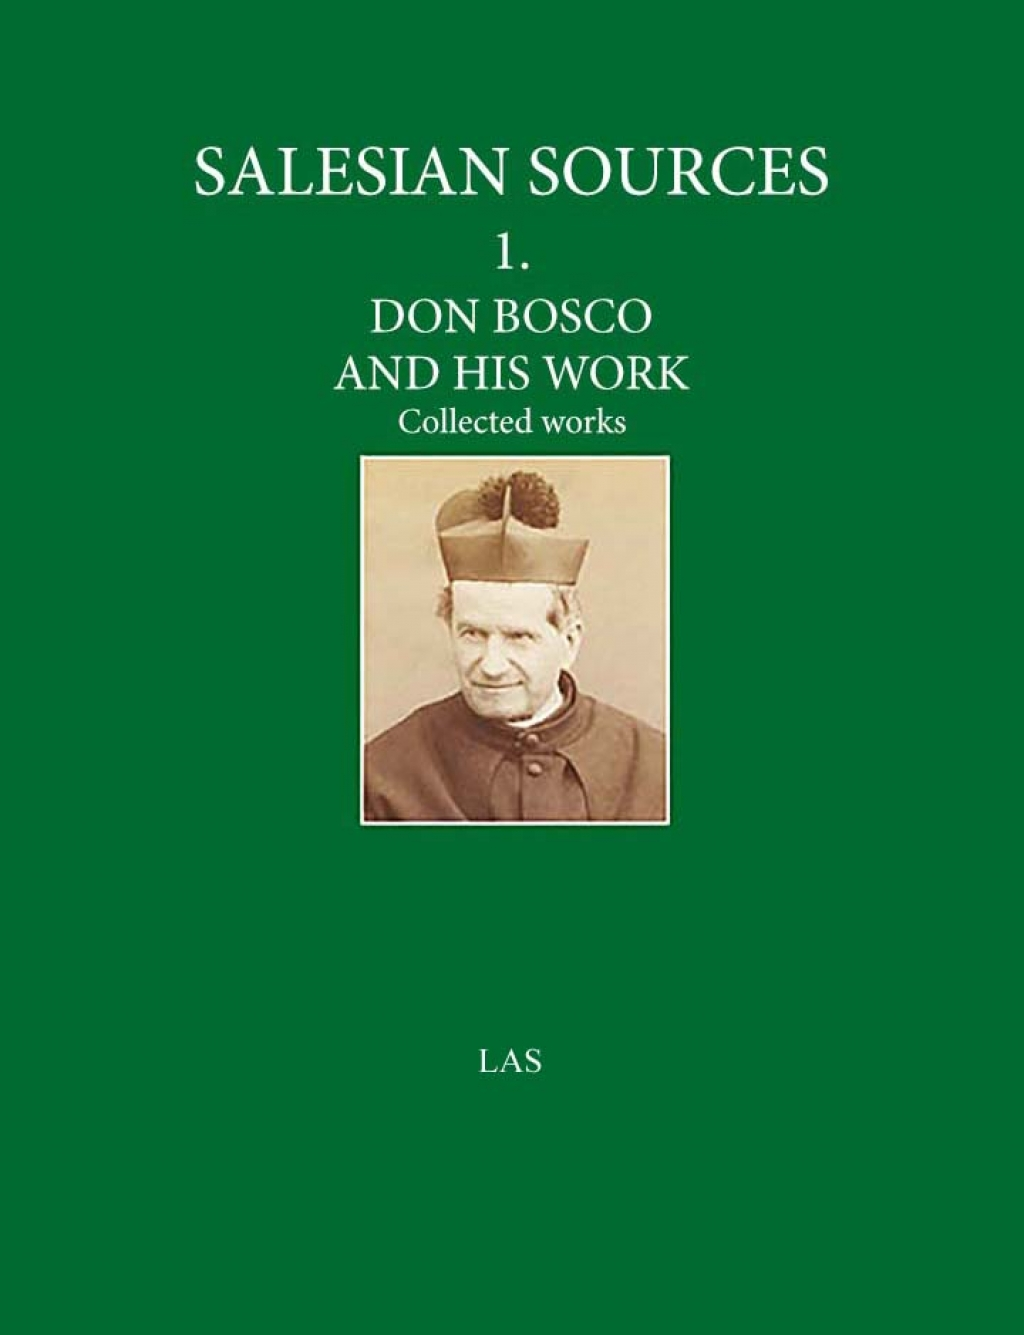 Libros De Don Bosco Salesian Sources Fonti Salesiane